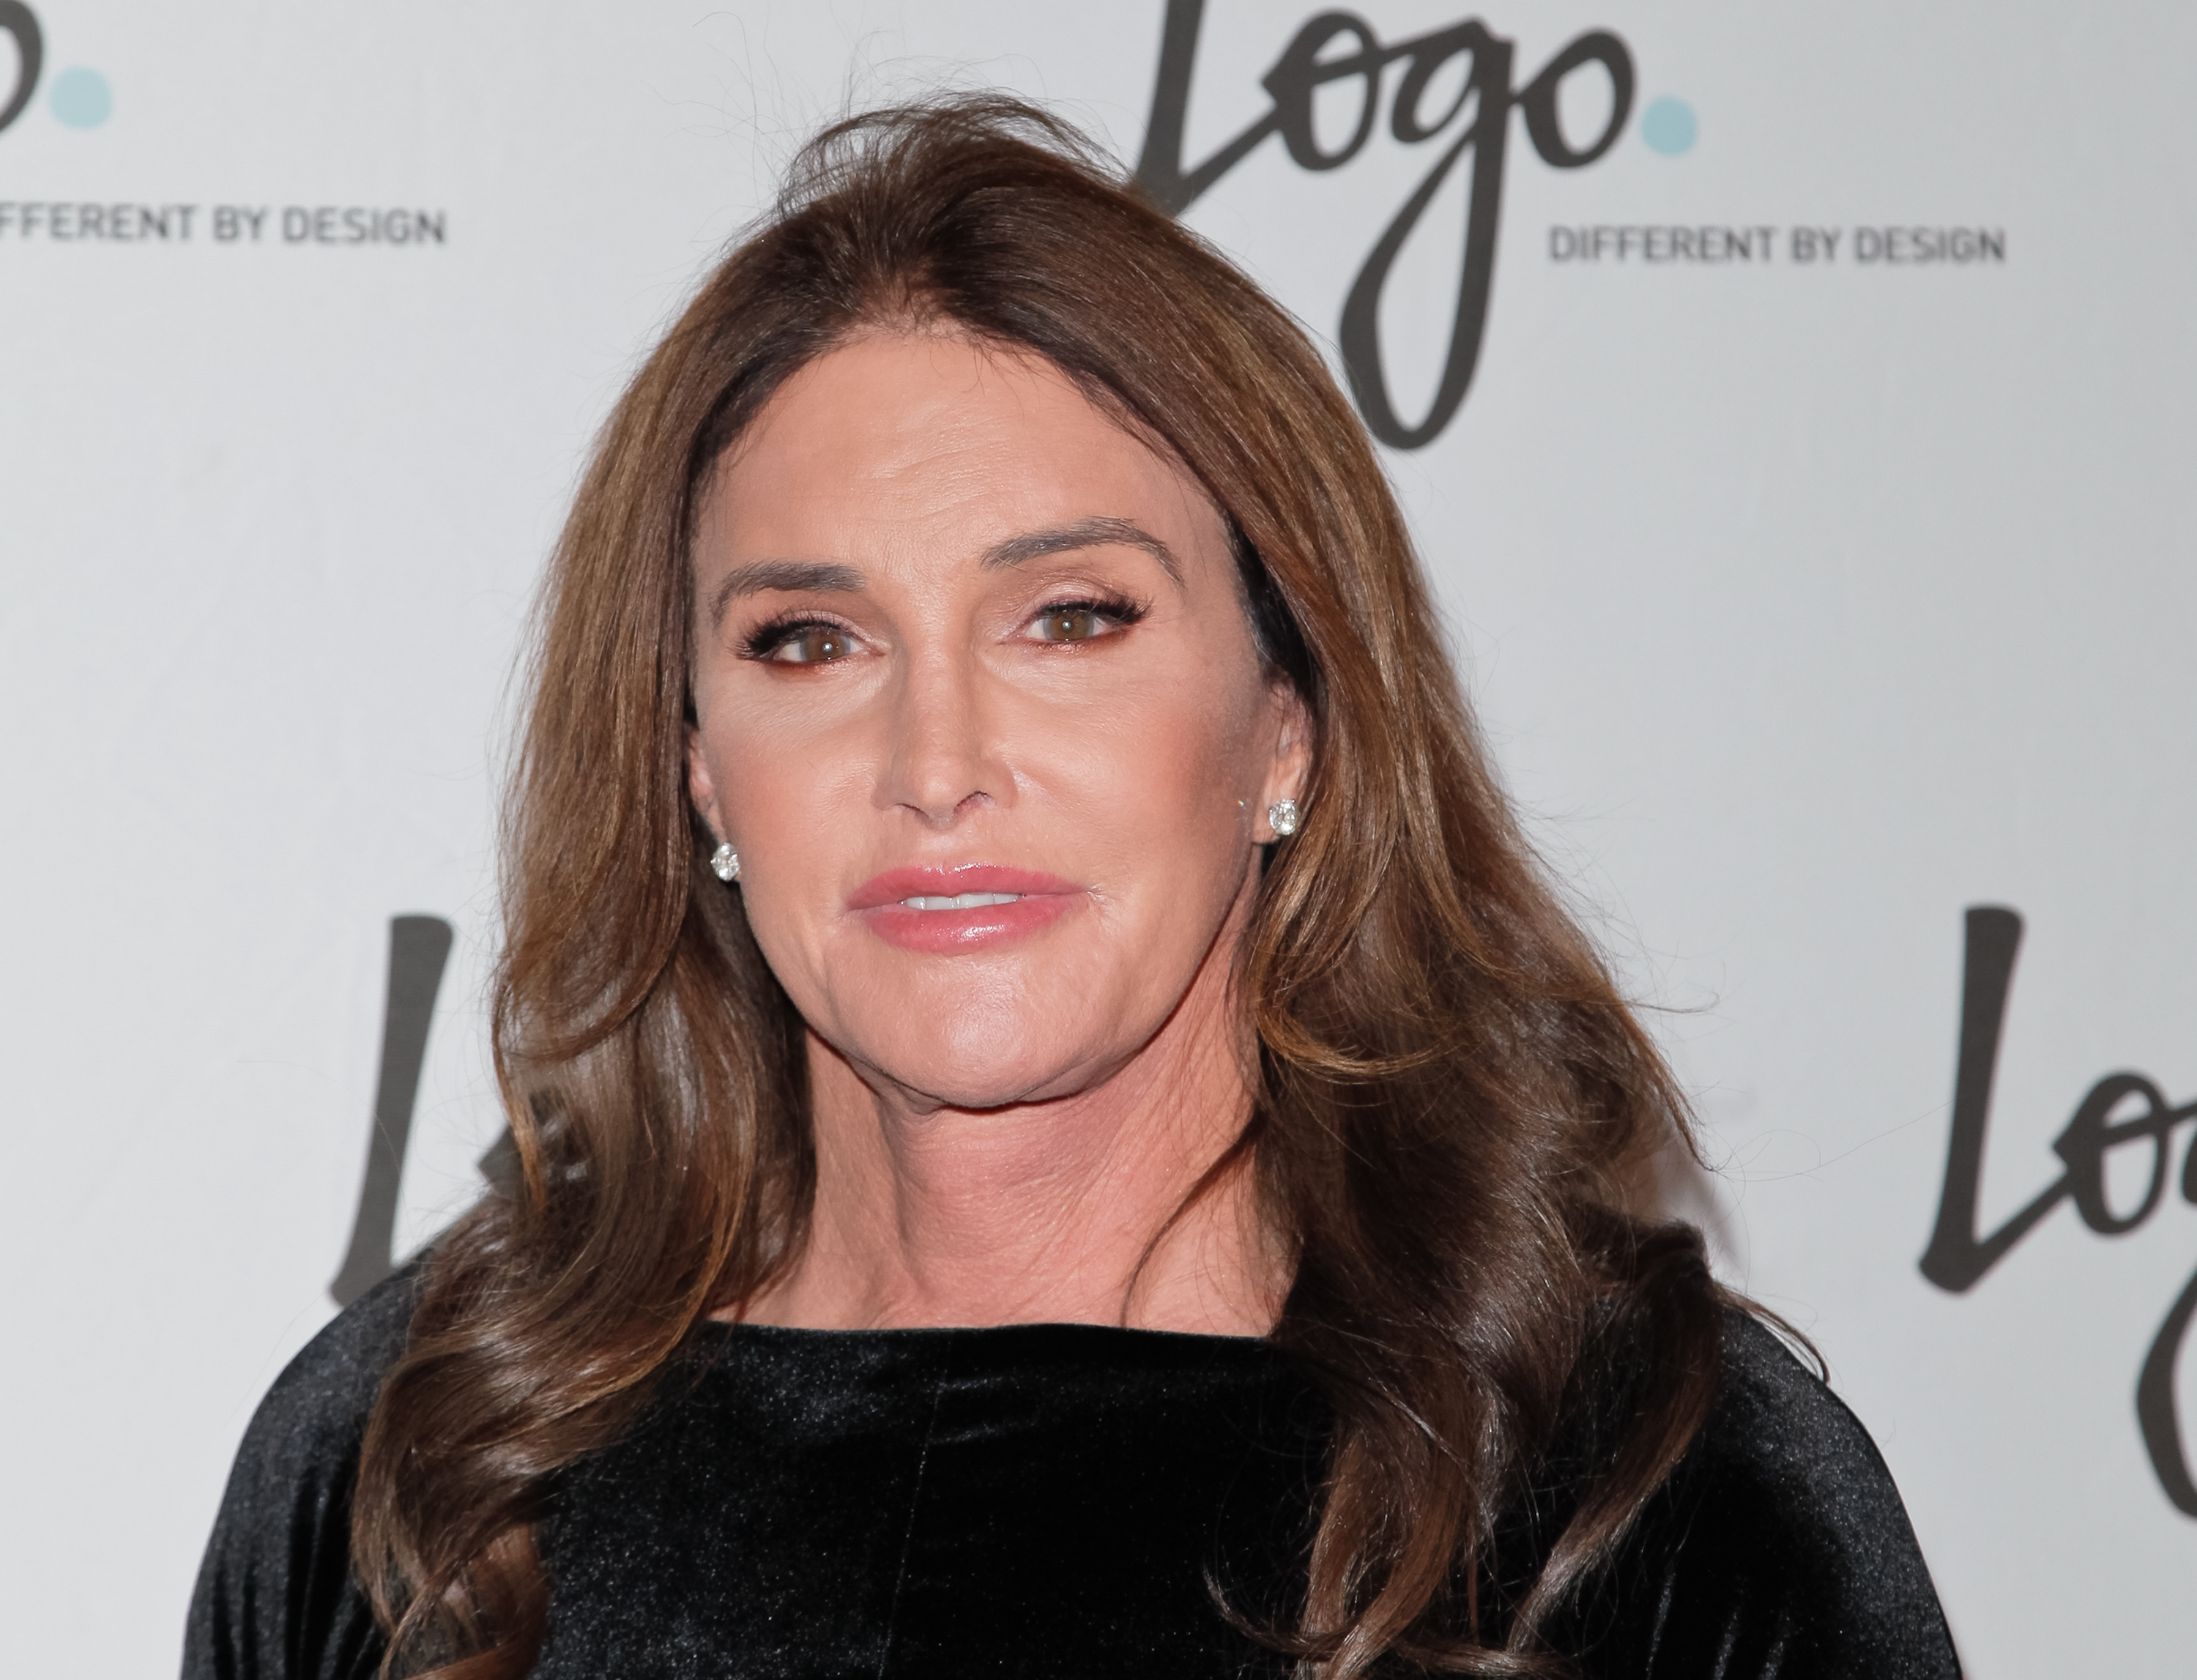 Caitlyn Jenner attends Logo TV's 'Beautiful As I Want To Be' web series launch party at The Standard Hotel on October 27, 2015 in Los Angeles, California.